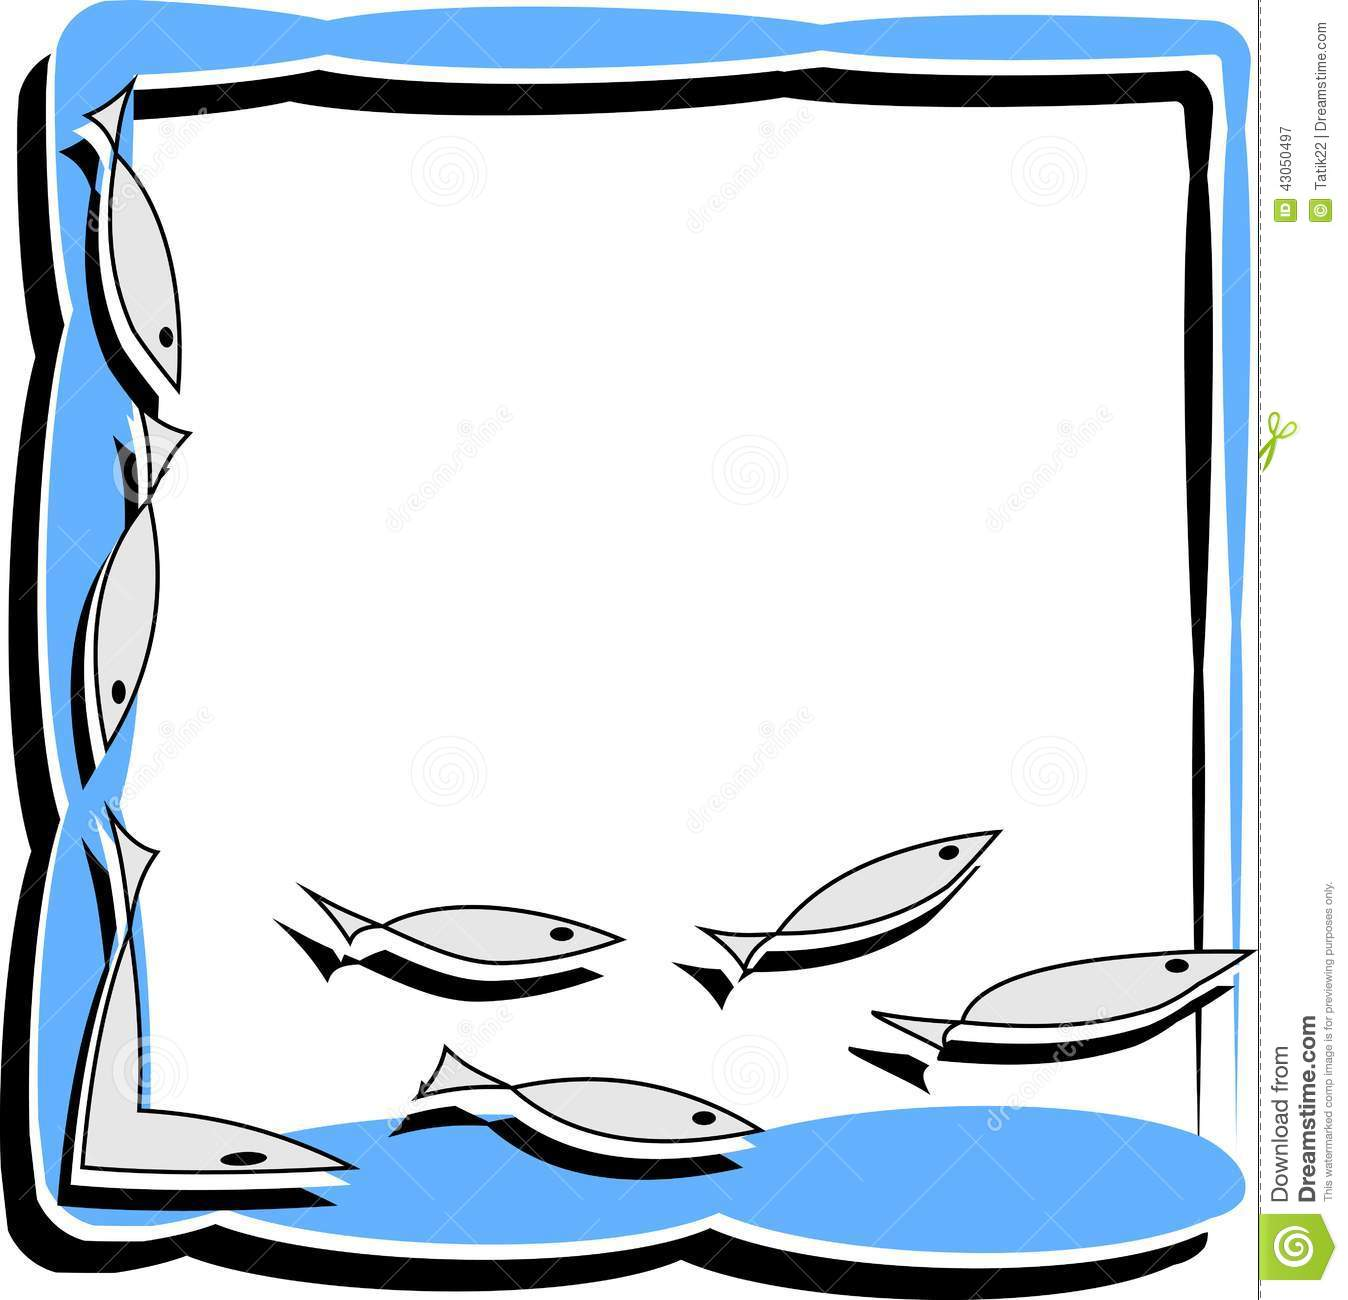 Simple Frame With Abstract Fish Stock Vector - Illustration of ...